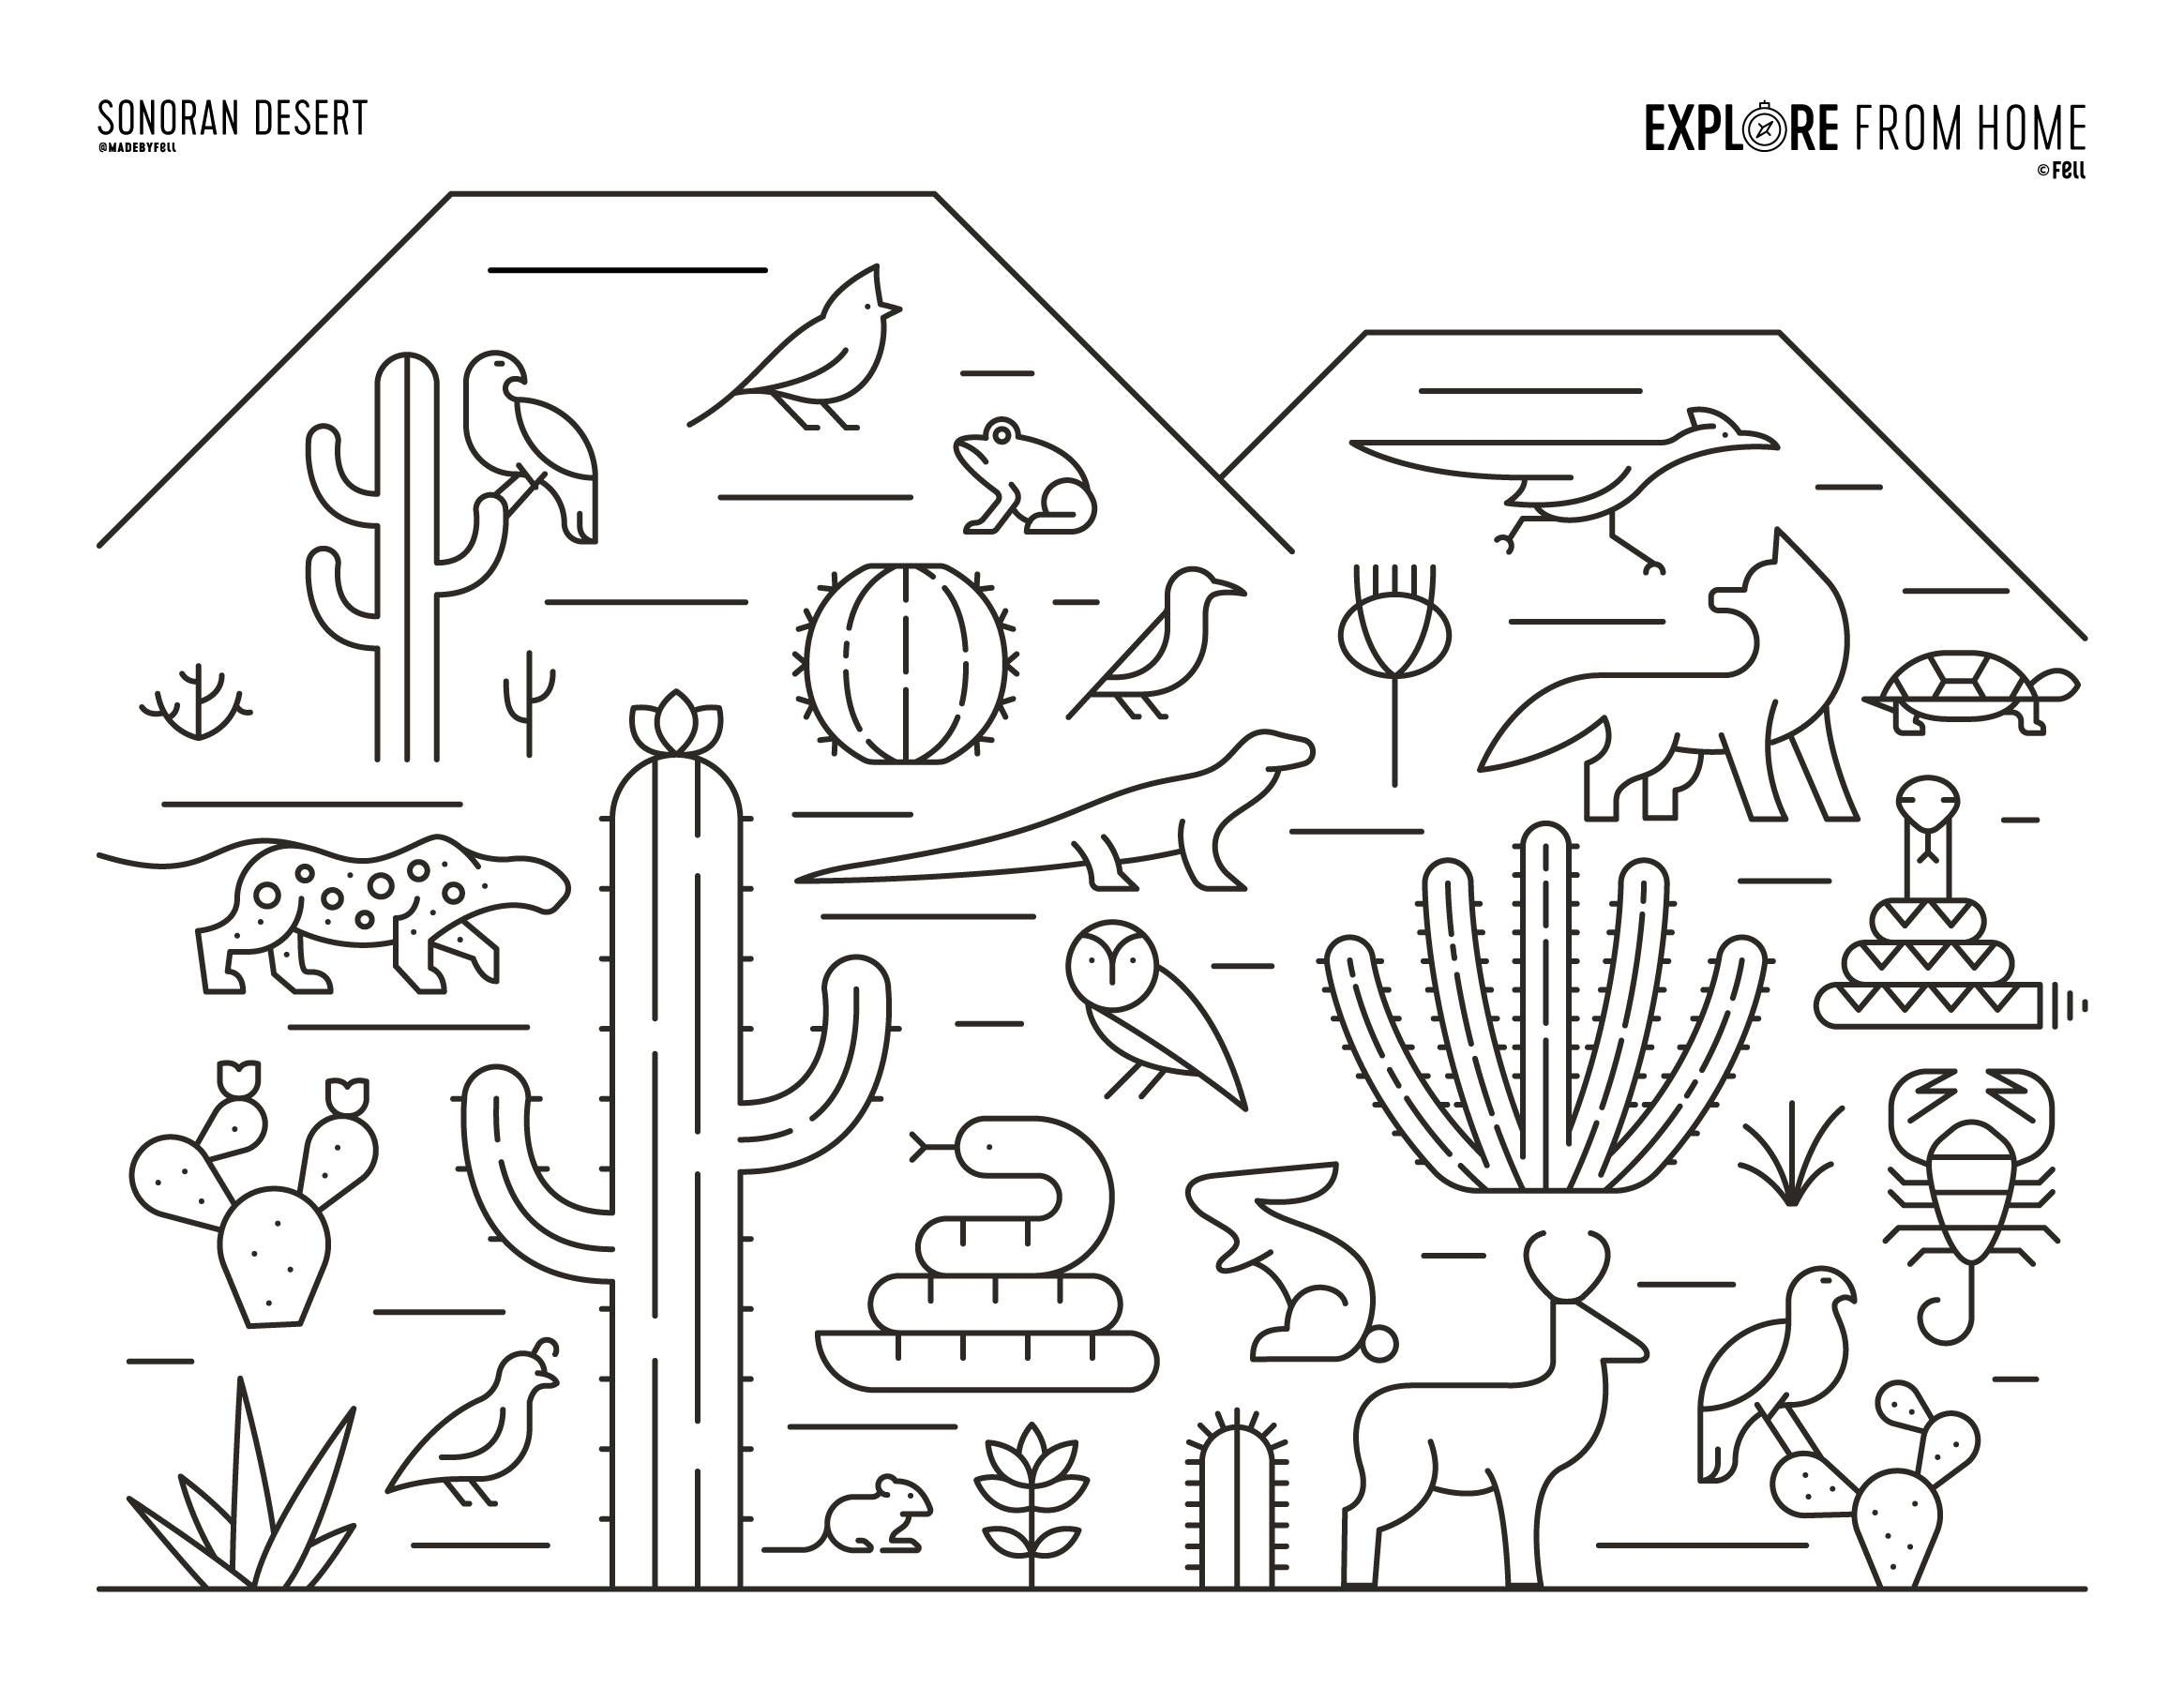 Biomes Sonoran Desert Coloring Page Coloring Pages Free Printable Coloring Pages Fruit Coloring Pages [ 1800 x 2329 Pixel ]